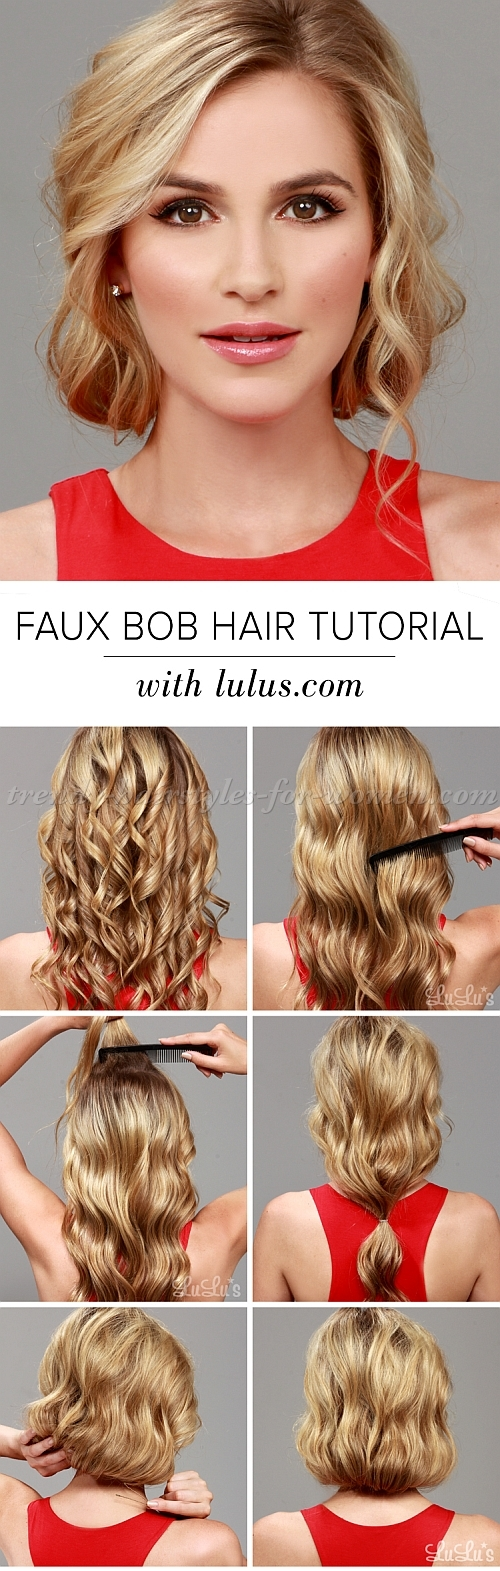 Hairstyle Tutorials Hairstyles Step By Step Faux Bob Hairstyle